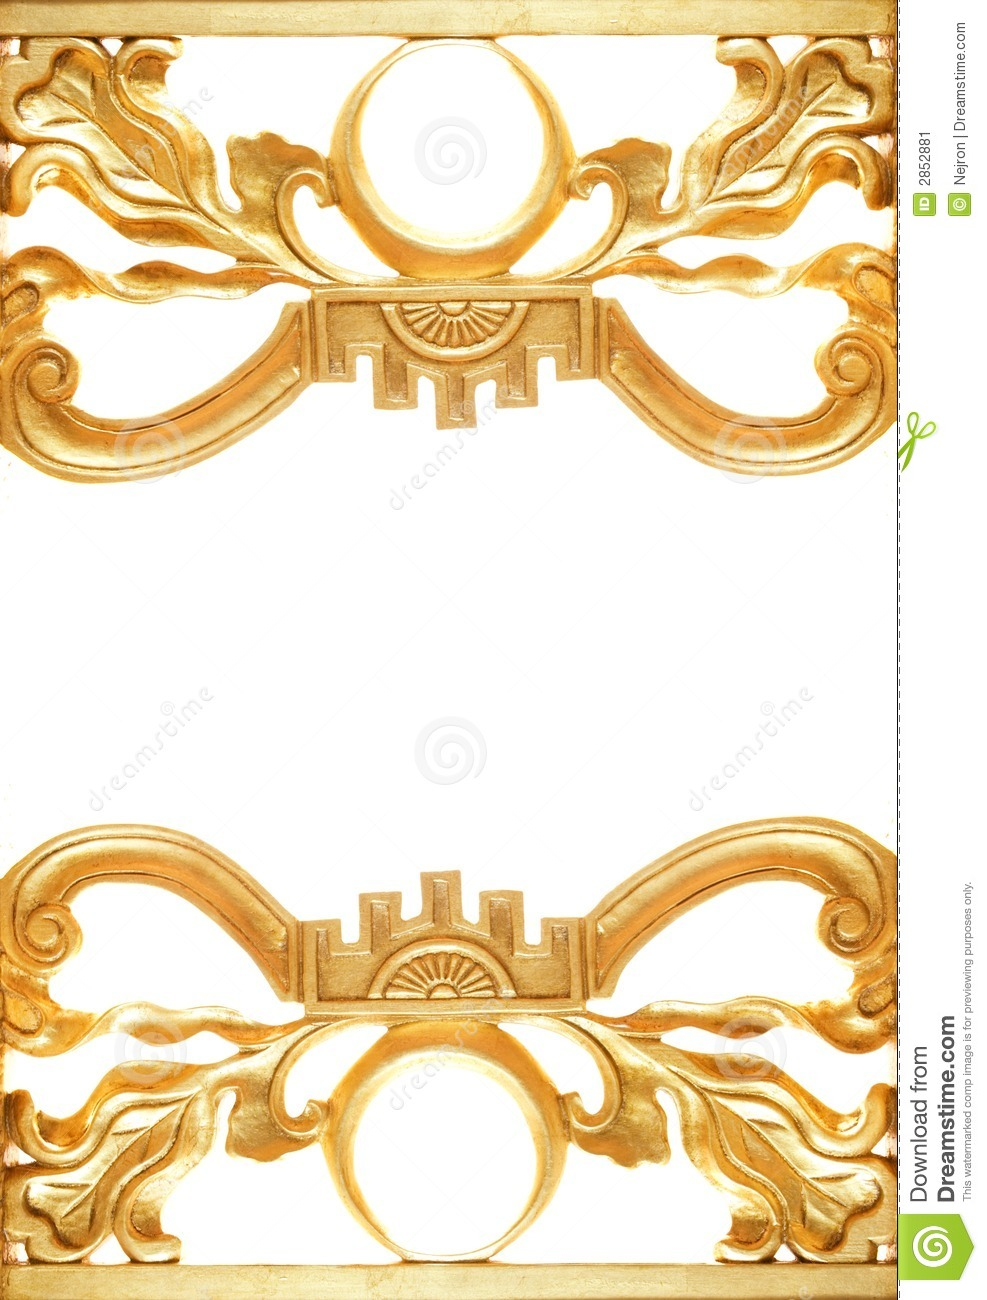 abstract golden border stock image image of material